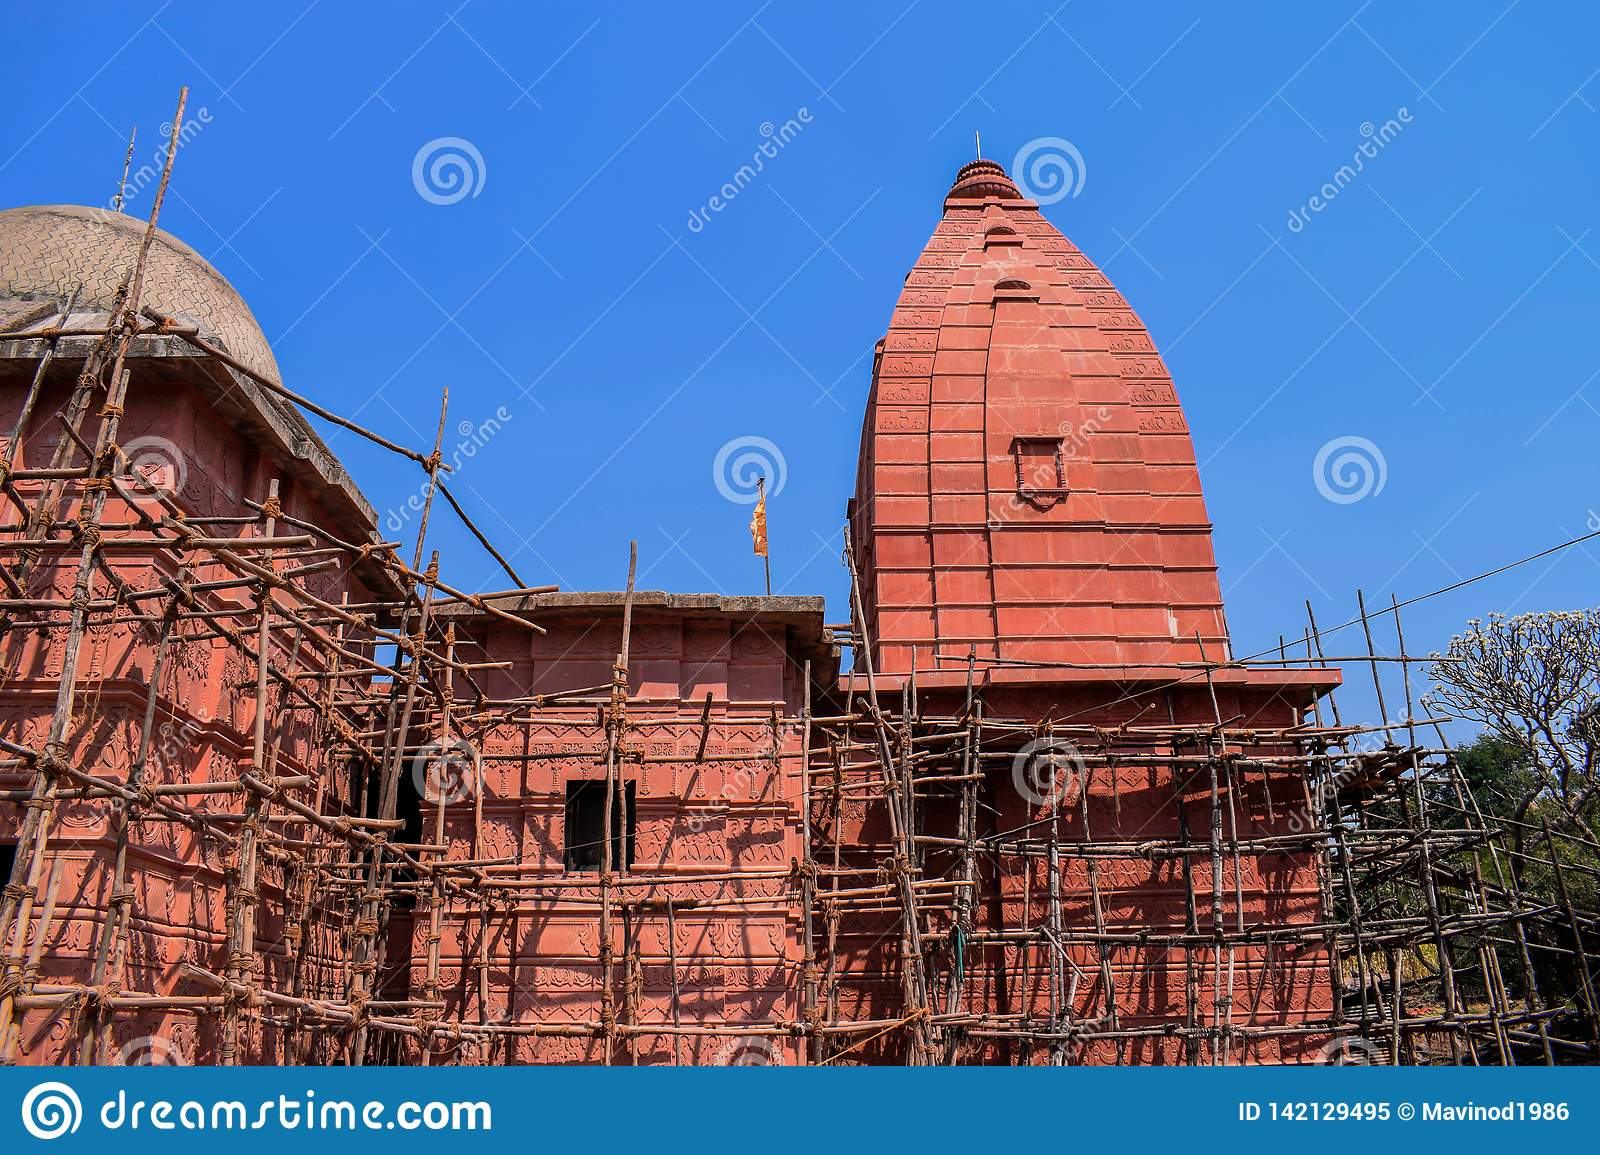 Renovation of a old epic ancient temple in the old city of India